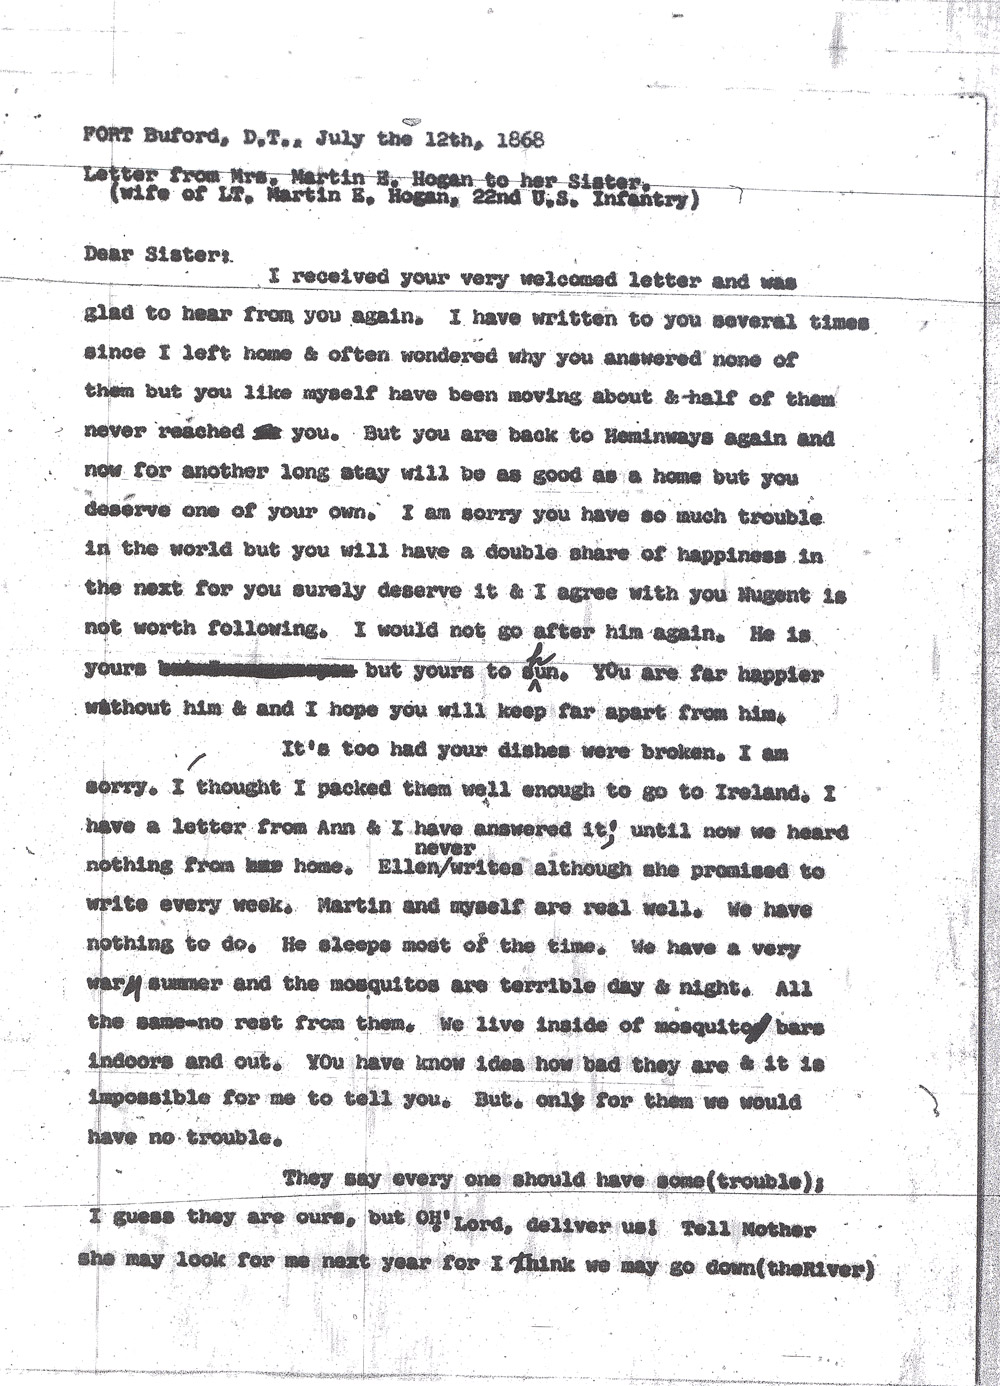 Kate Hogan Letter 1, Transcription, Page 1